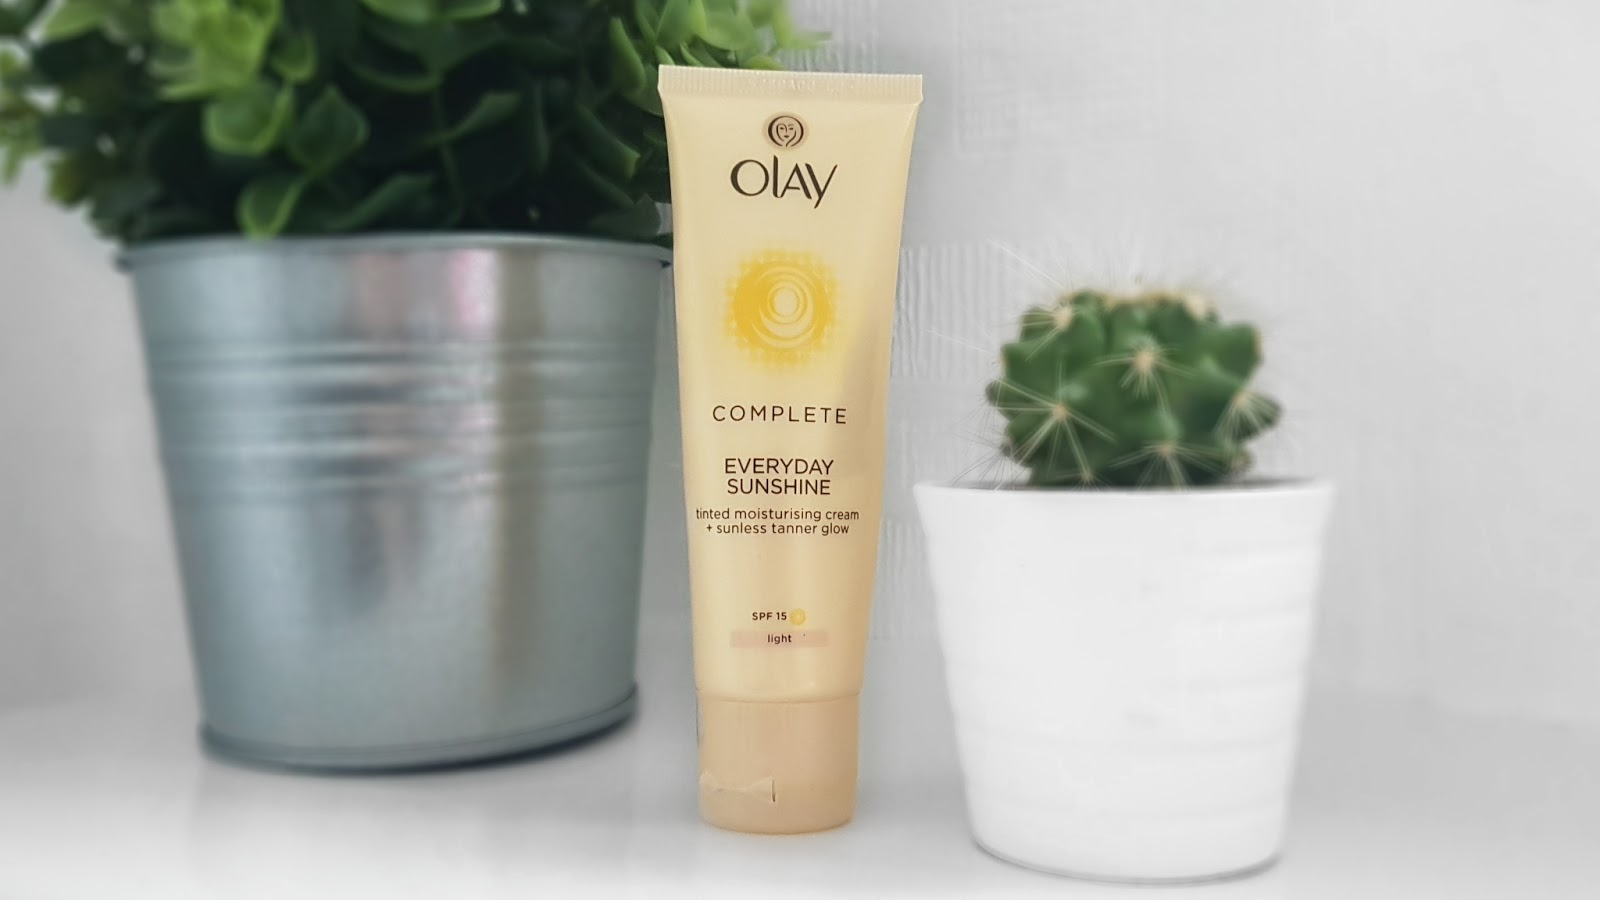 Olay Complete Everyday Sunshine Moisturiser